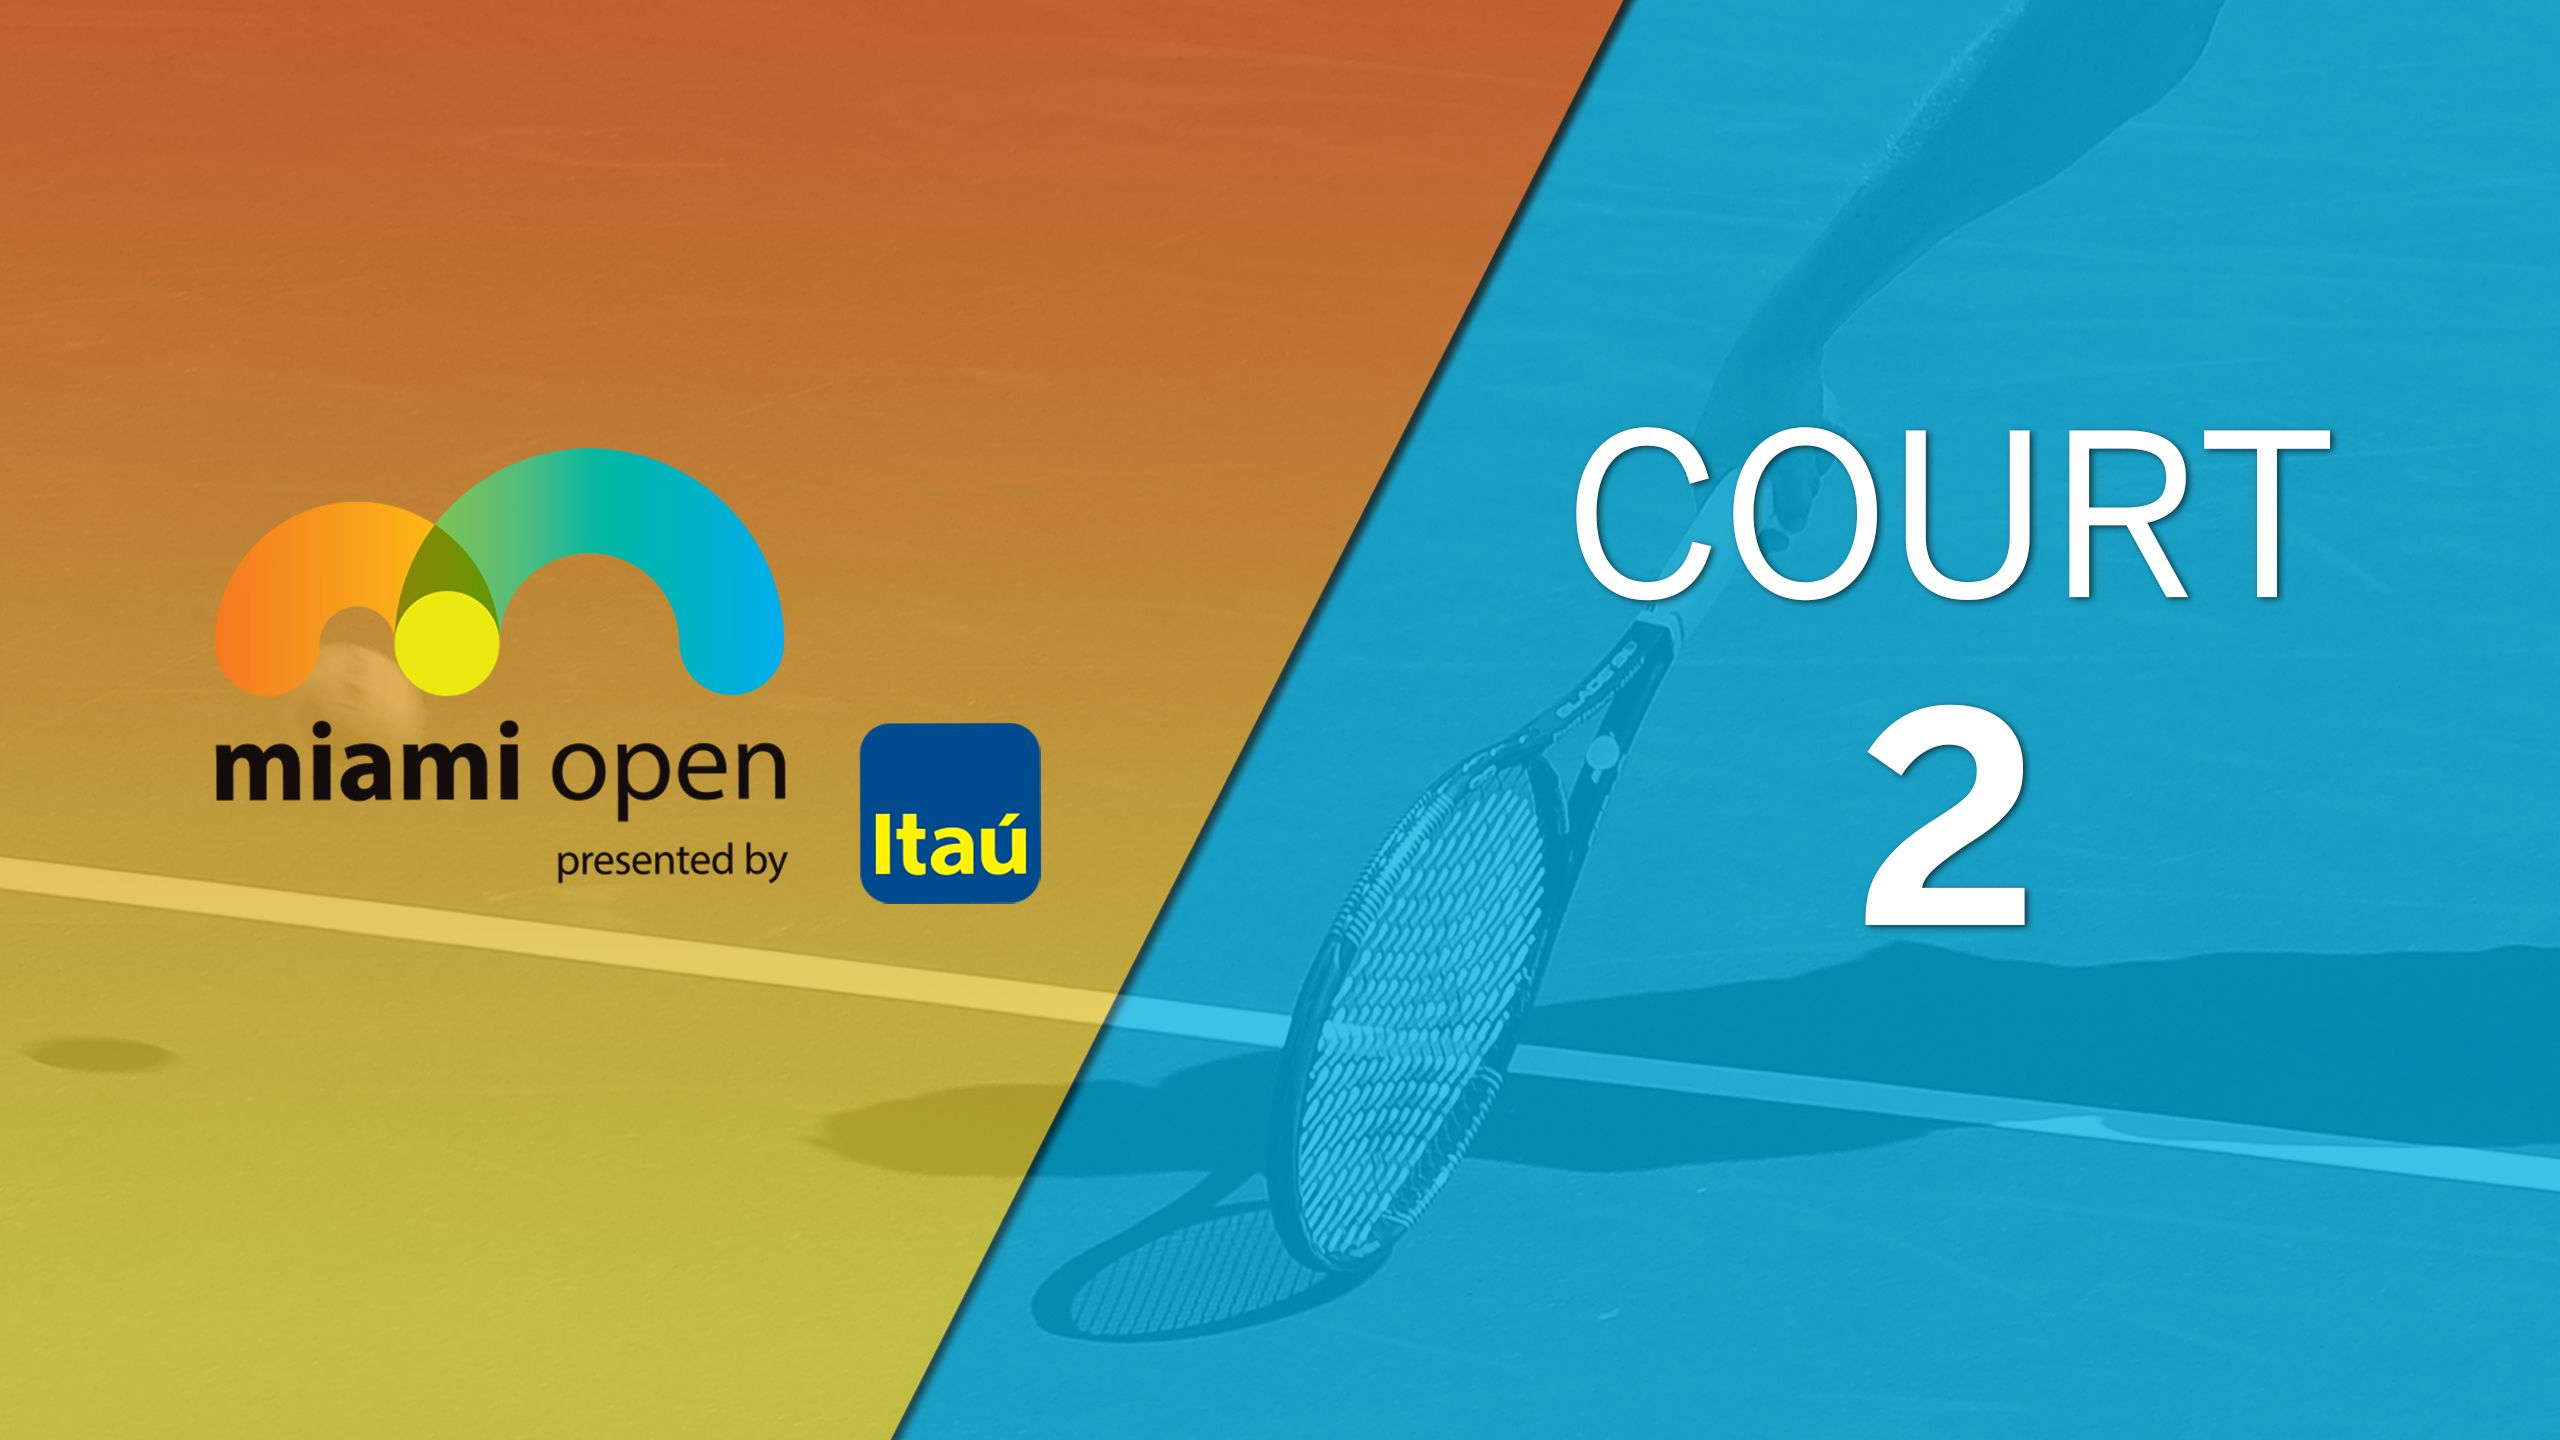 Miami Open - Court 2 (First Round)